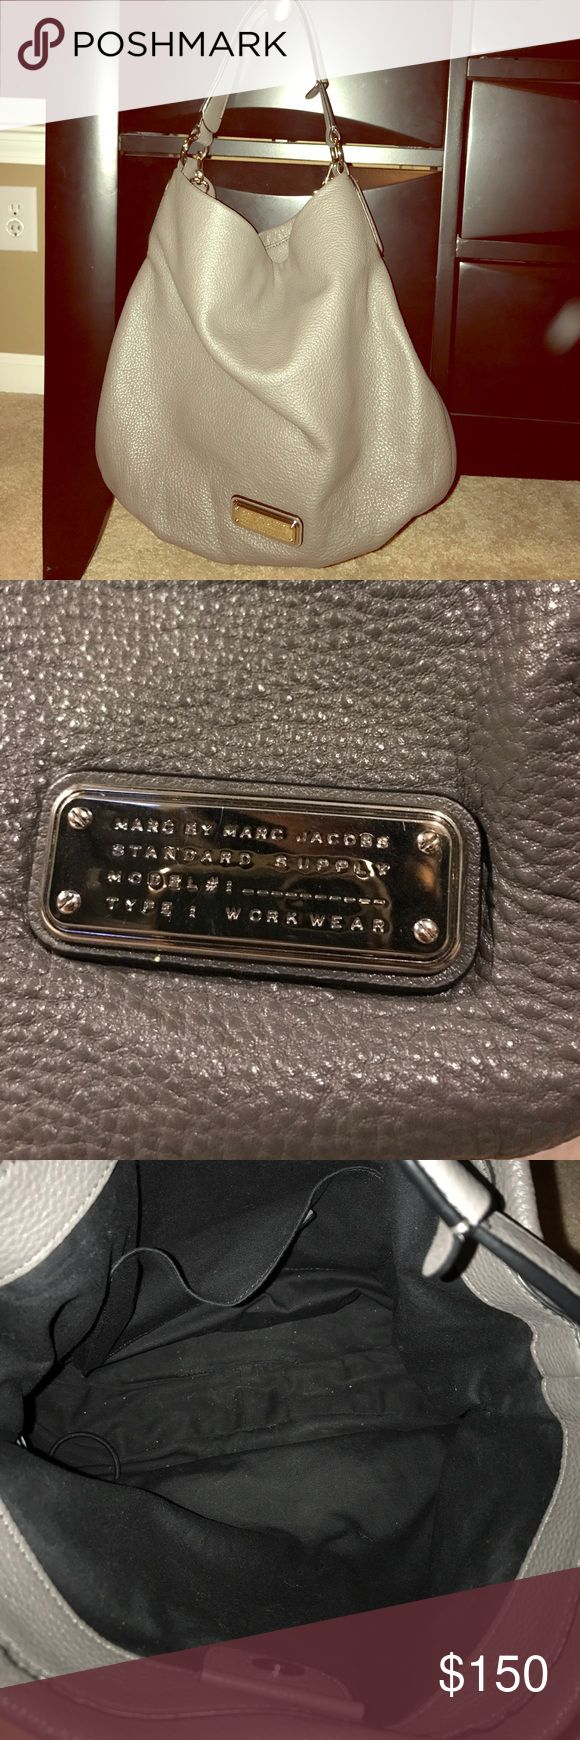 Like New! Marc by Marc Jacobs Grey Shoulder Bag Excellent condition! Gorgeous grey leather. No wear or stains. Plenty of room inside. Marc by Marc Jacobs Bags Shoulder Bags